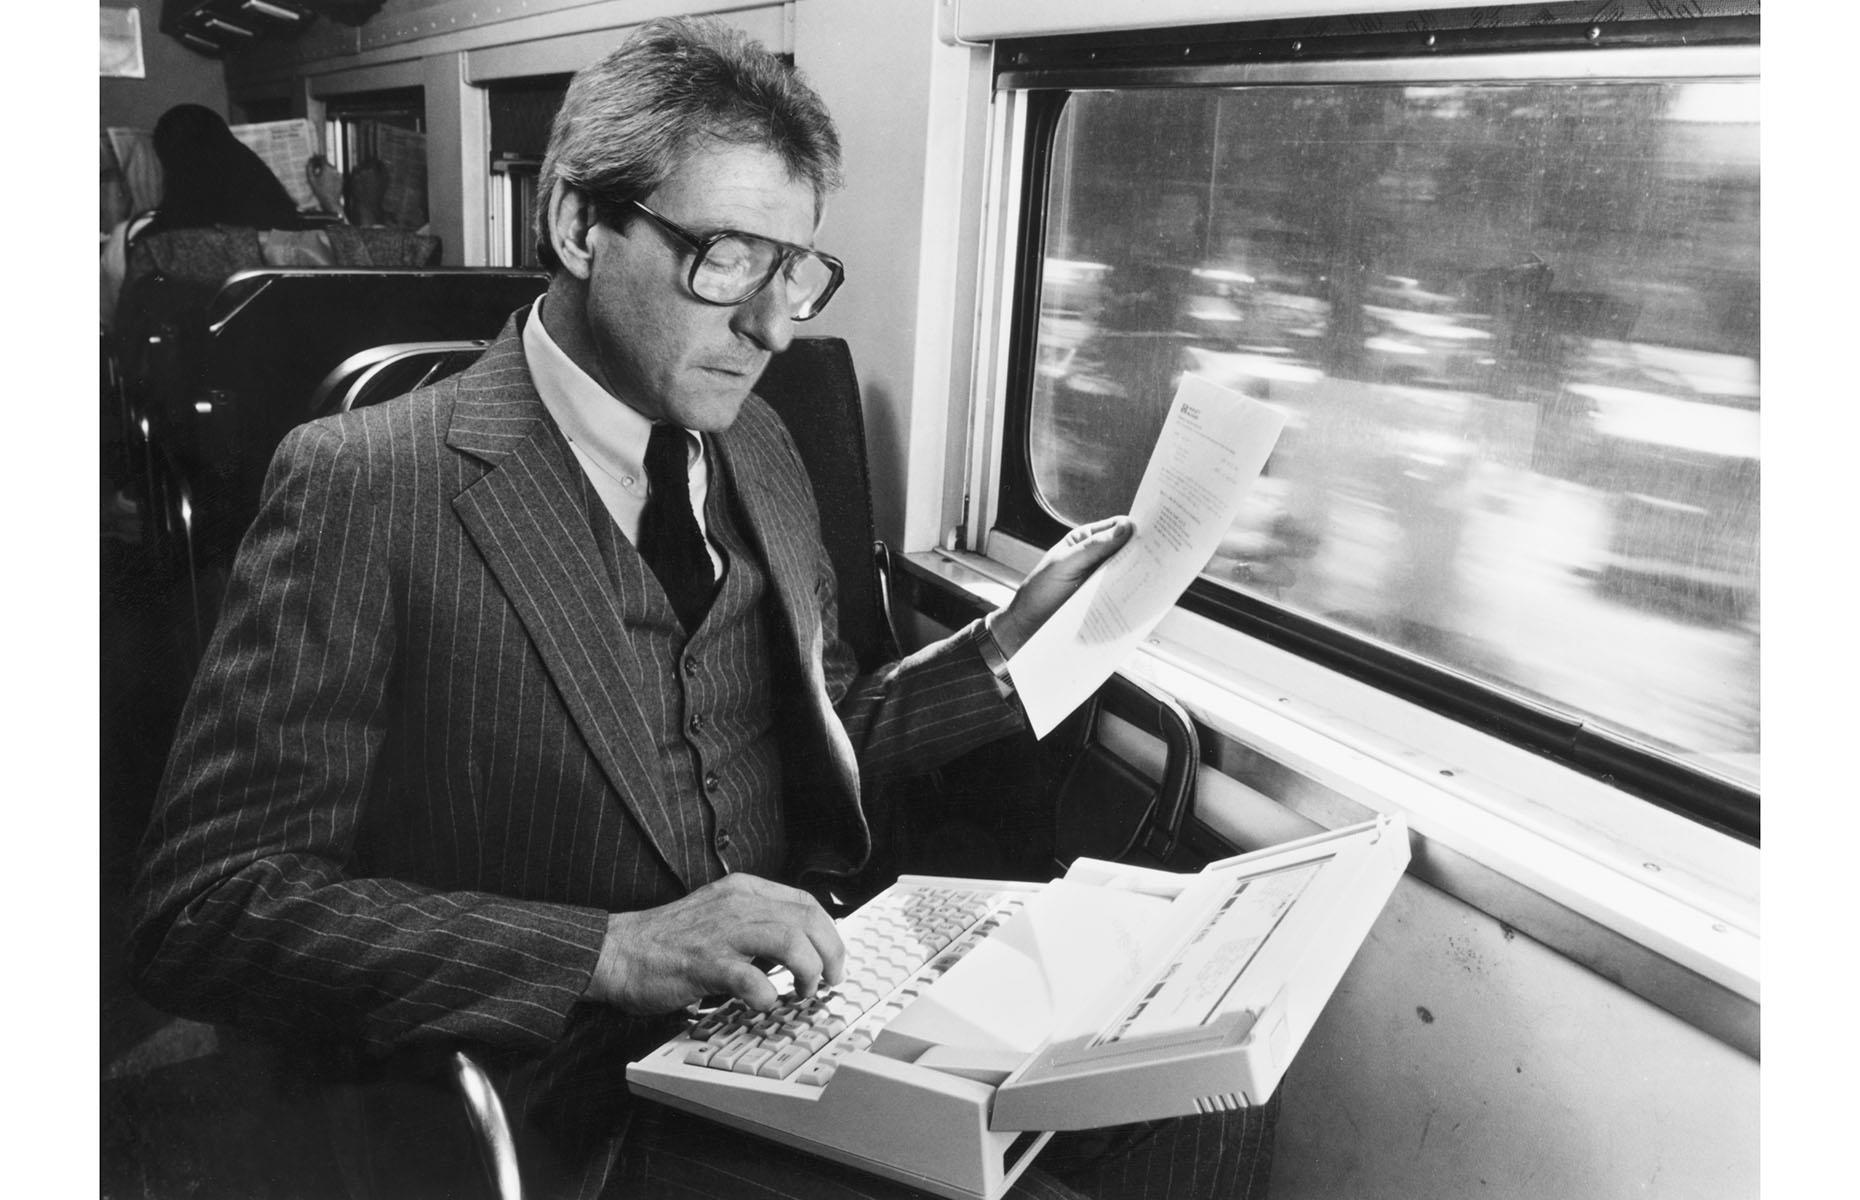 Slide 28 of 32: Not at all a surprising sight on any train today, this gentleman from the 1980s is well ahead of his time as he's using precious commute time to do work on an early Hewlett-Packard laptop. Discover vintage photos of American summer vacations.